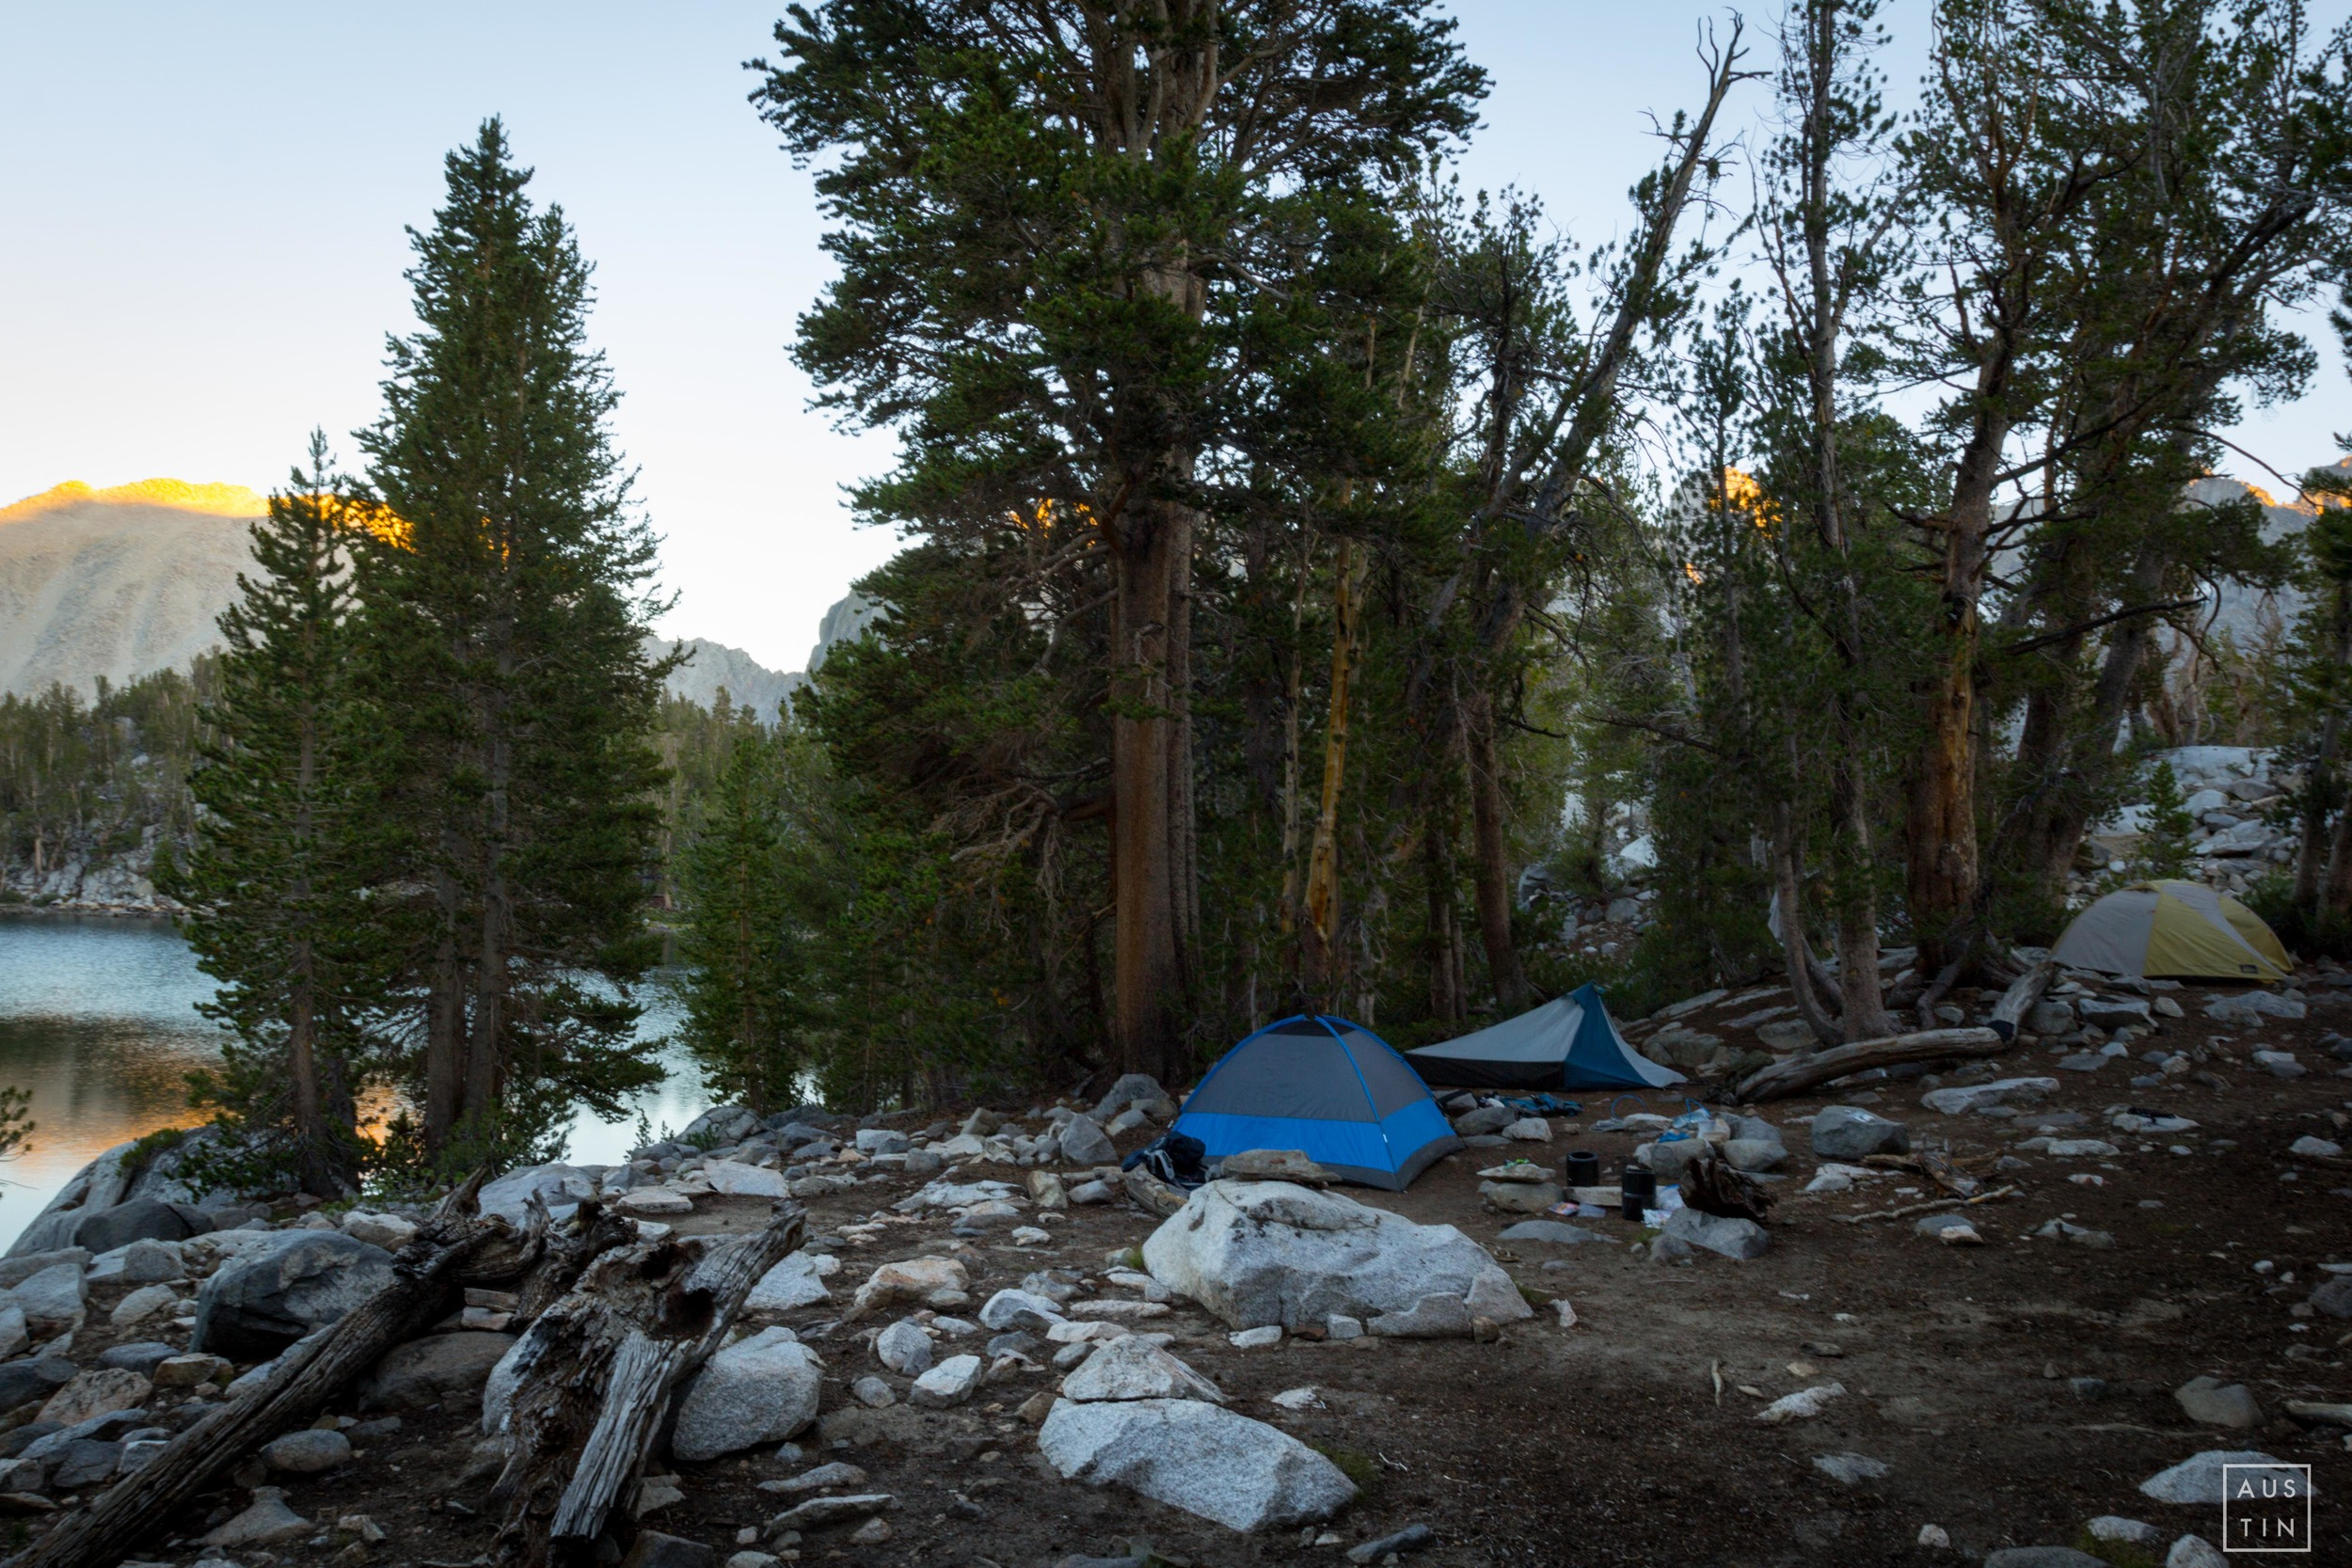 Our campspot at Summit Lake was perfect for 3 tents